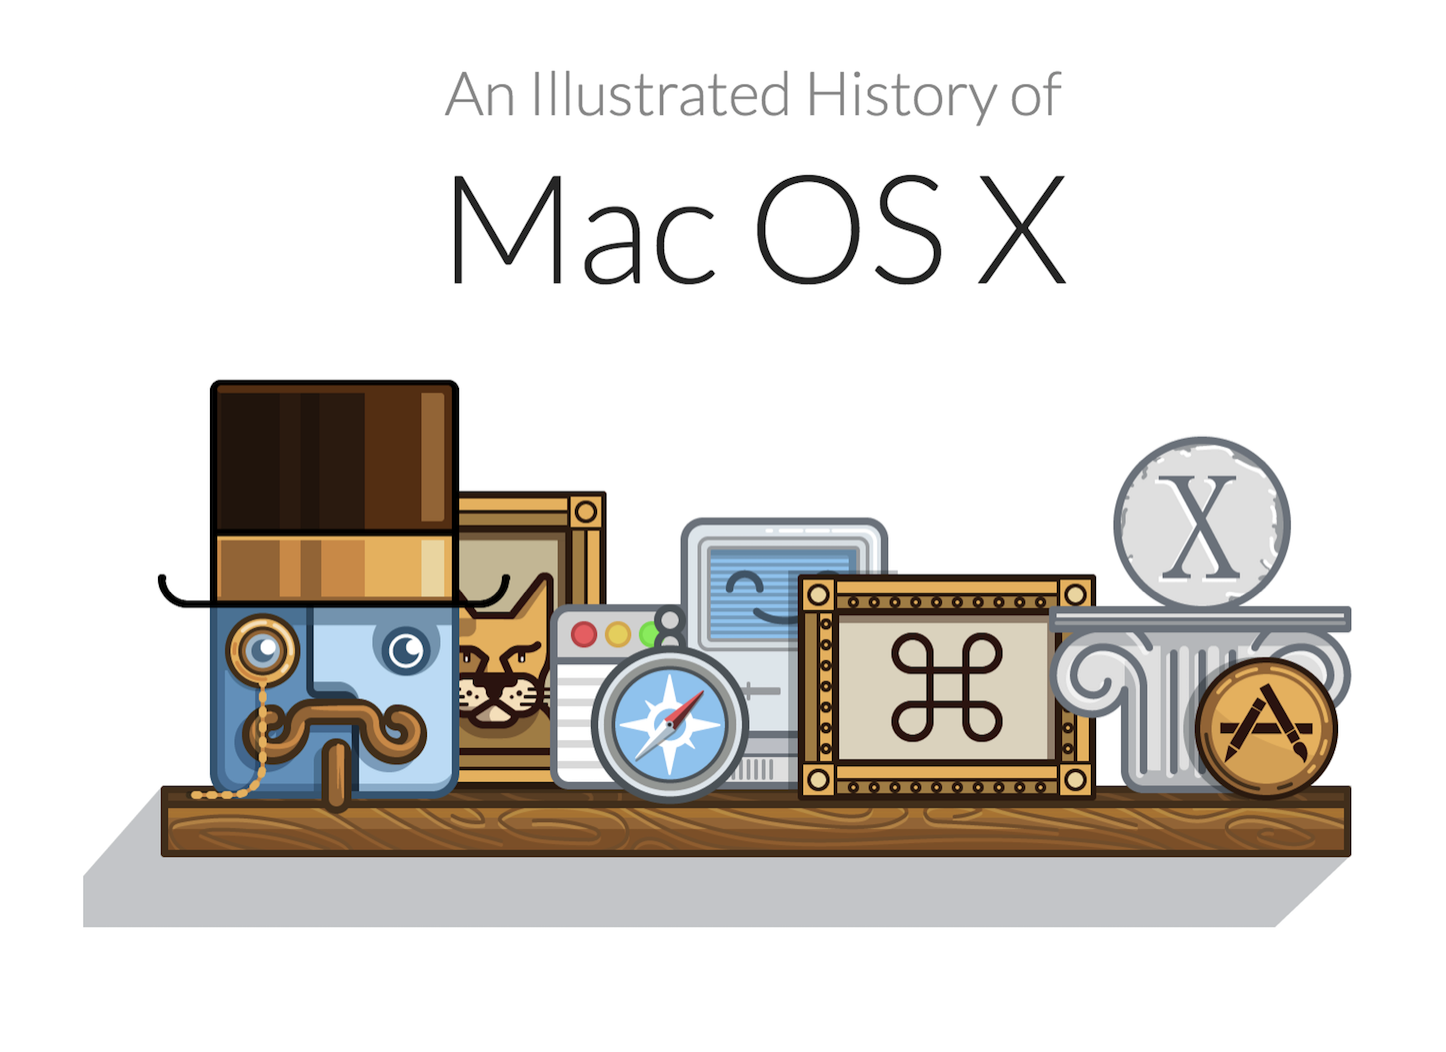 Illustrated History Of Mac OS X